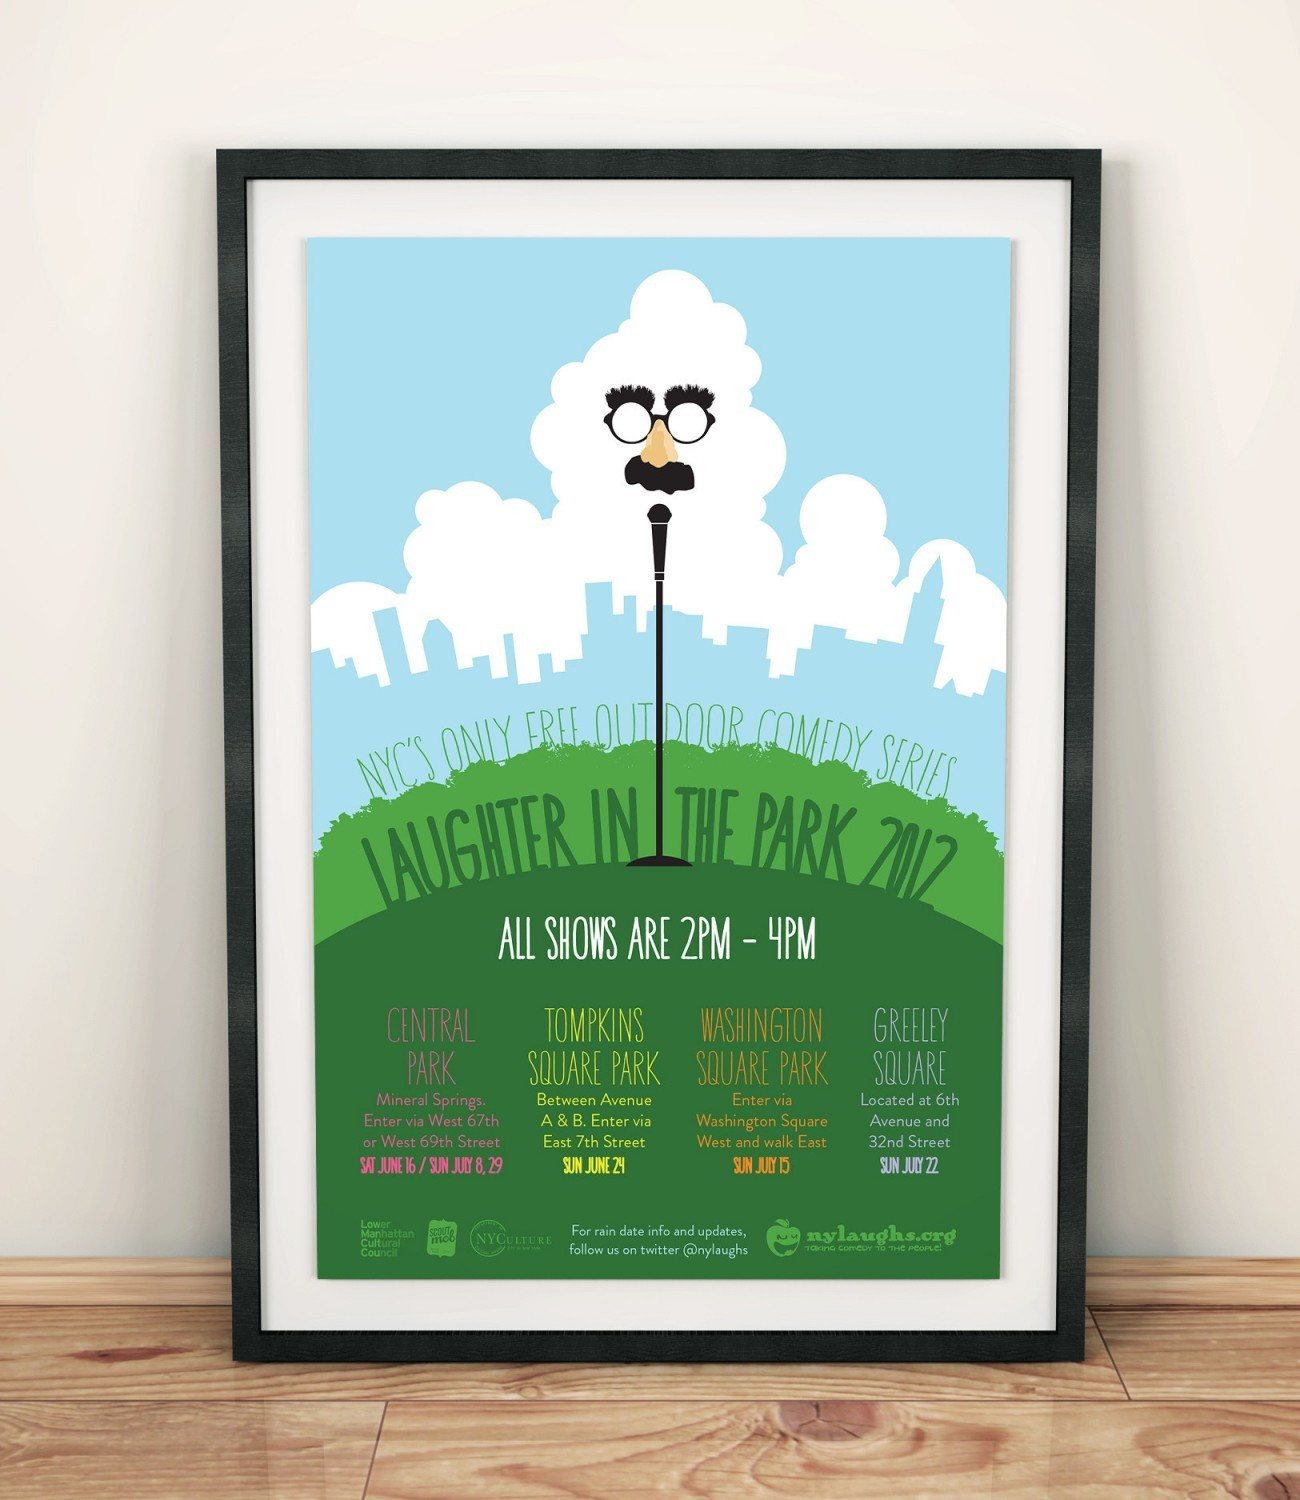 Laughter in the Park Poster 2012, designed by Query Creative in the Hudson Valley